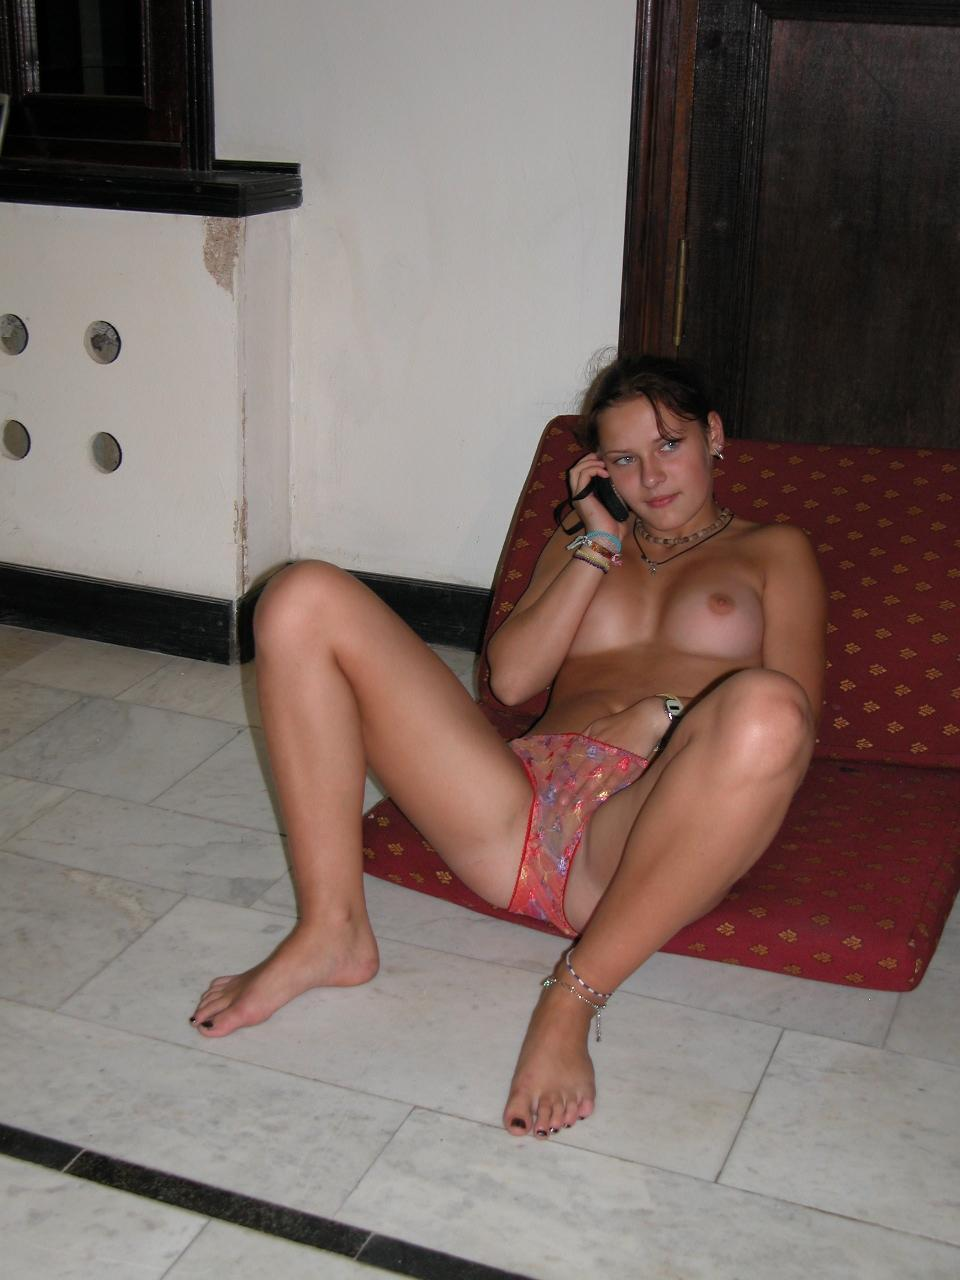 Amateur who is a call girl - 4